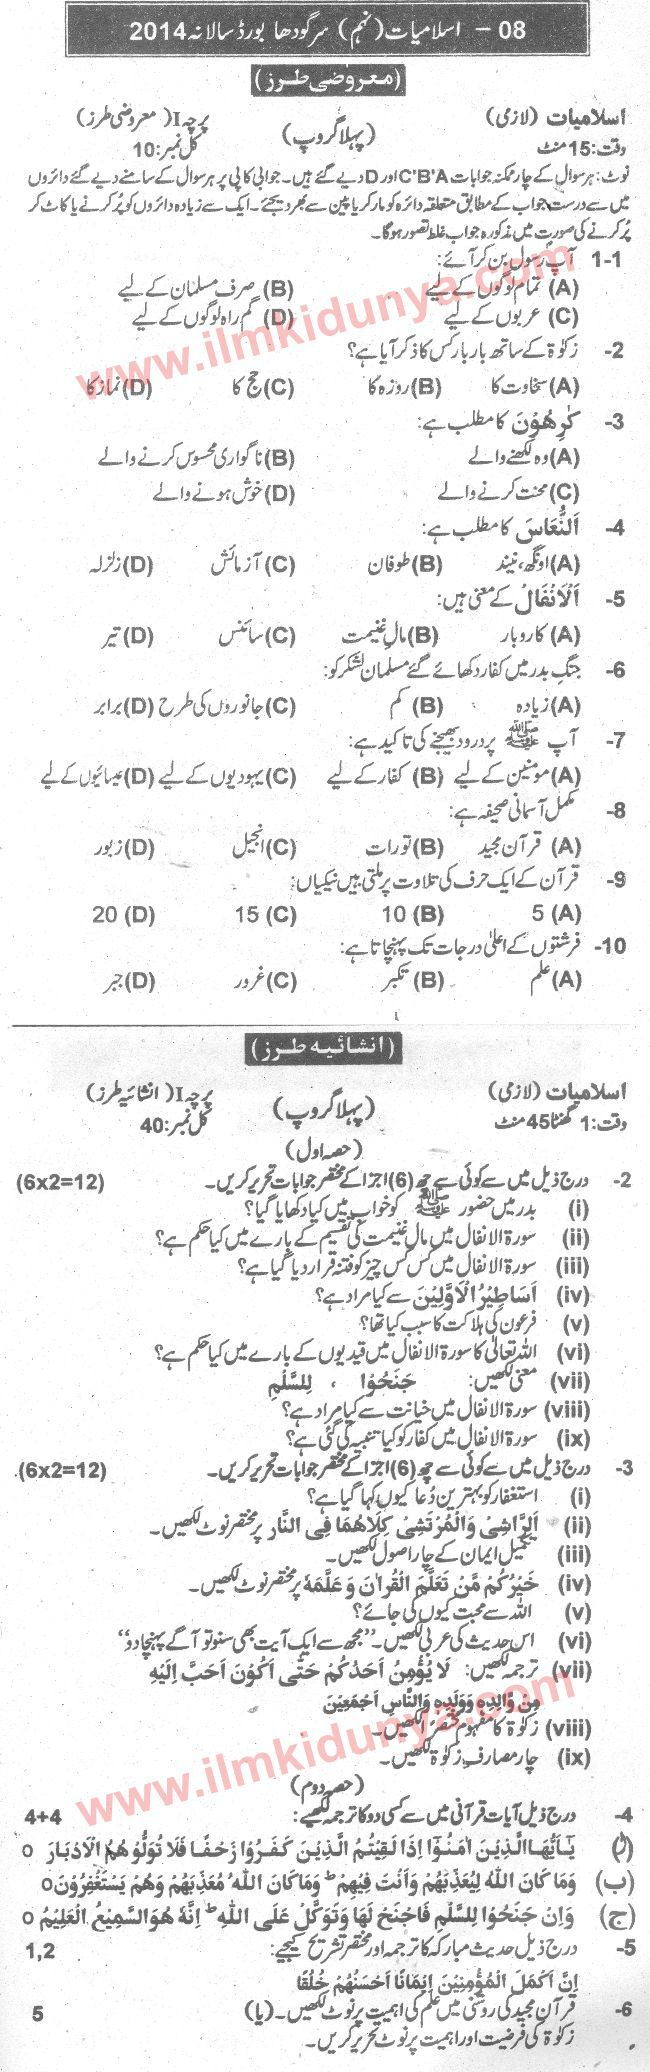 Past Papers 2014 Sargodha Board 9th Class Islamiat Group 1 Word Problem Worksheets Rational Function Absolute Value Equations